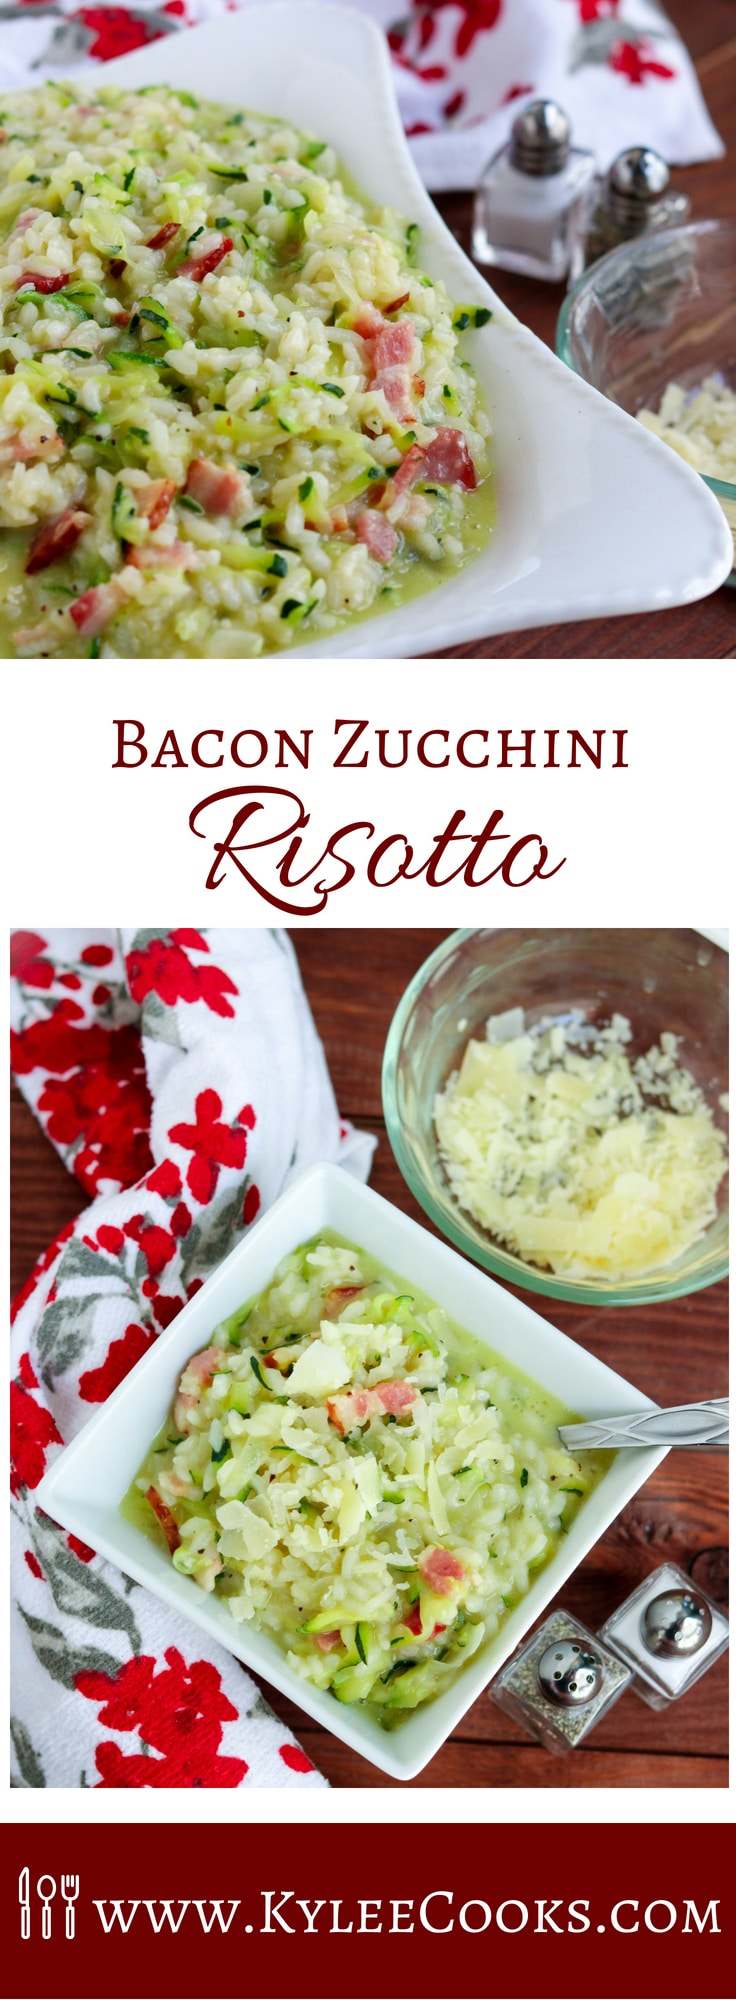 A perfect way to use up summer squash, the Bacon Zucchini Risotto is creamy, bright and fresh - so yummy! This is a great one pan dinner, or a perfect side. #risotto #bacon #zucchini #recipe #kyleecooks